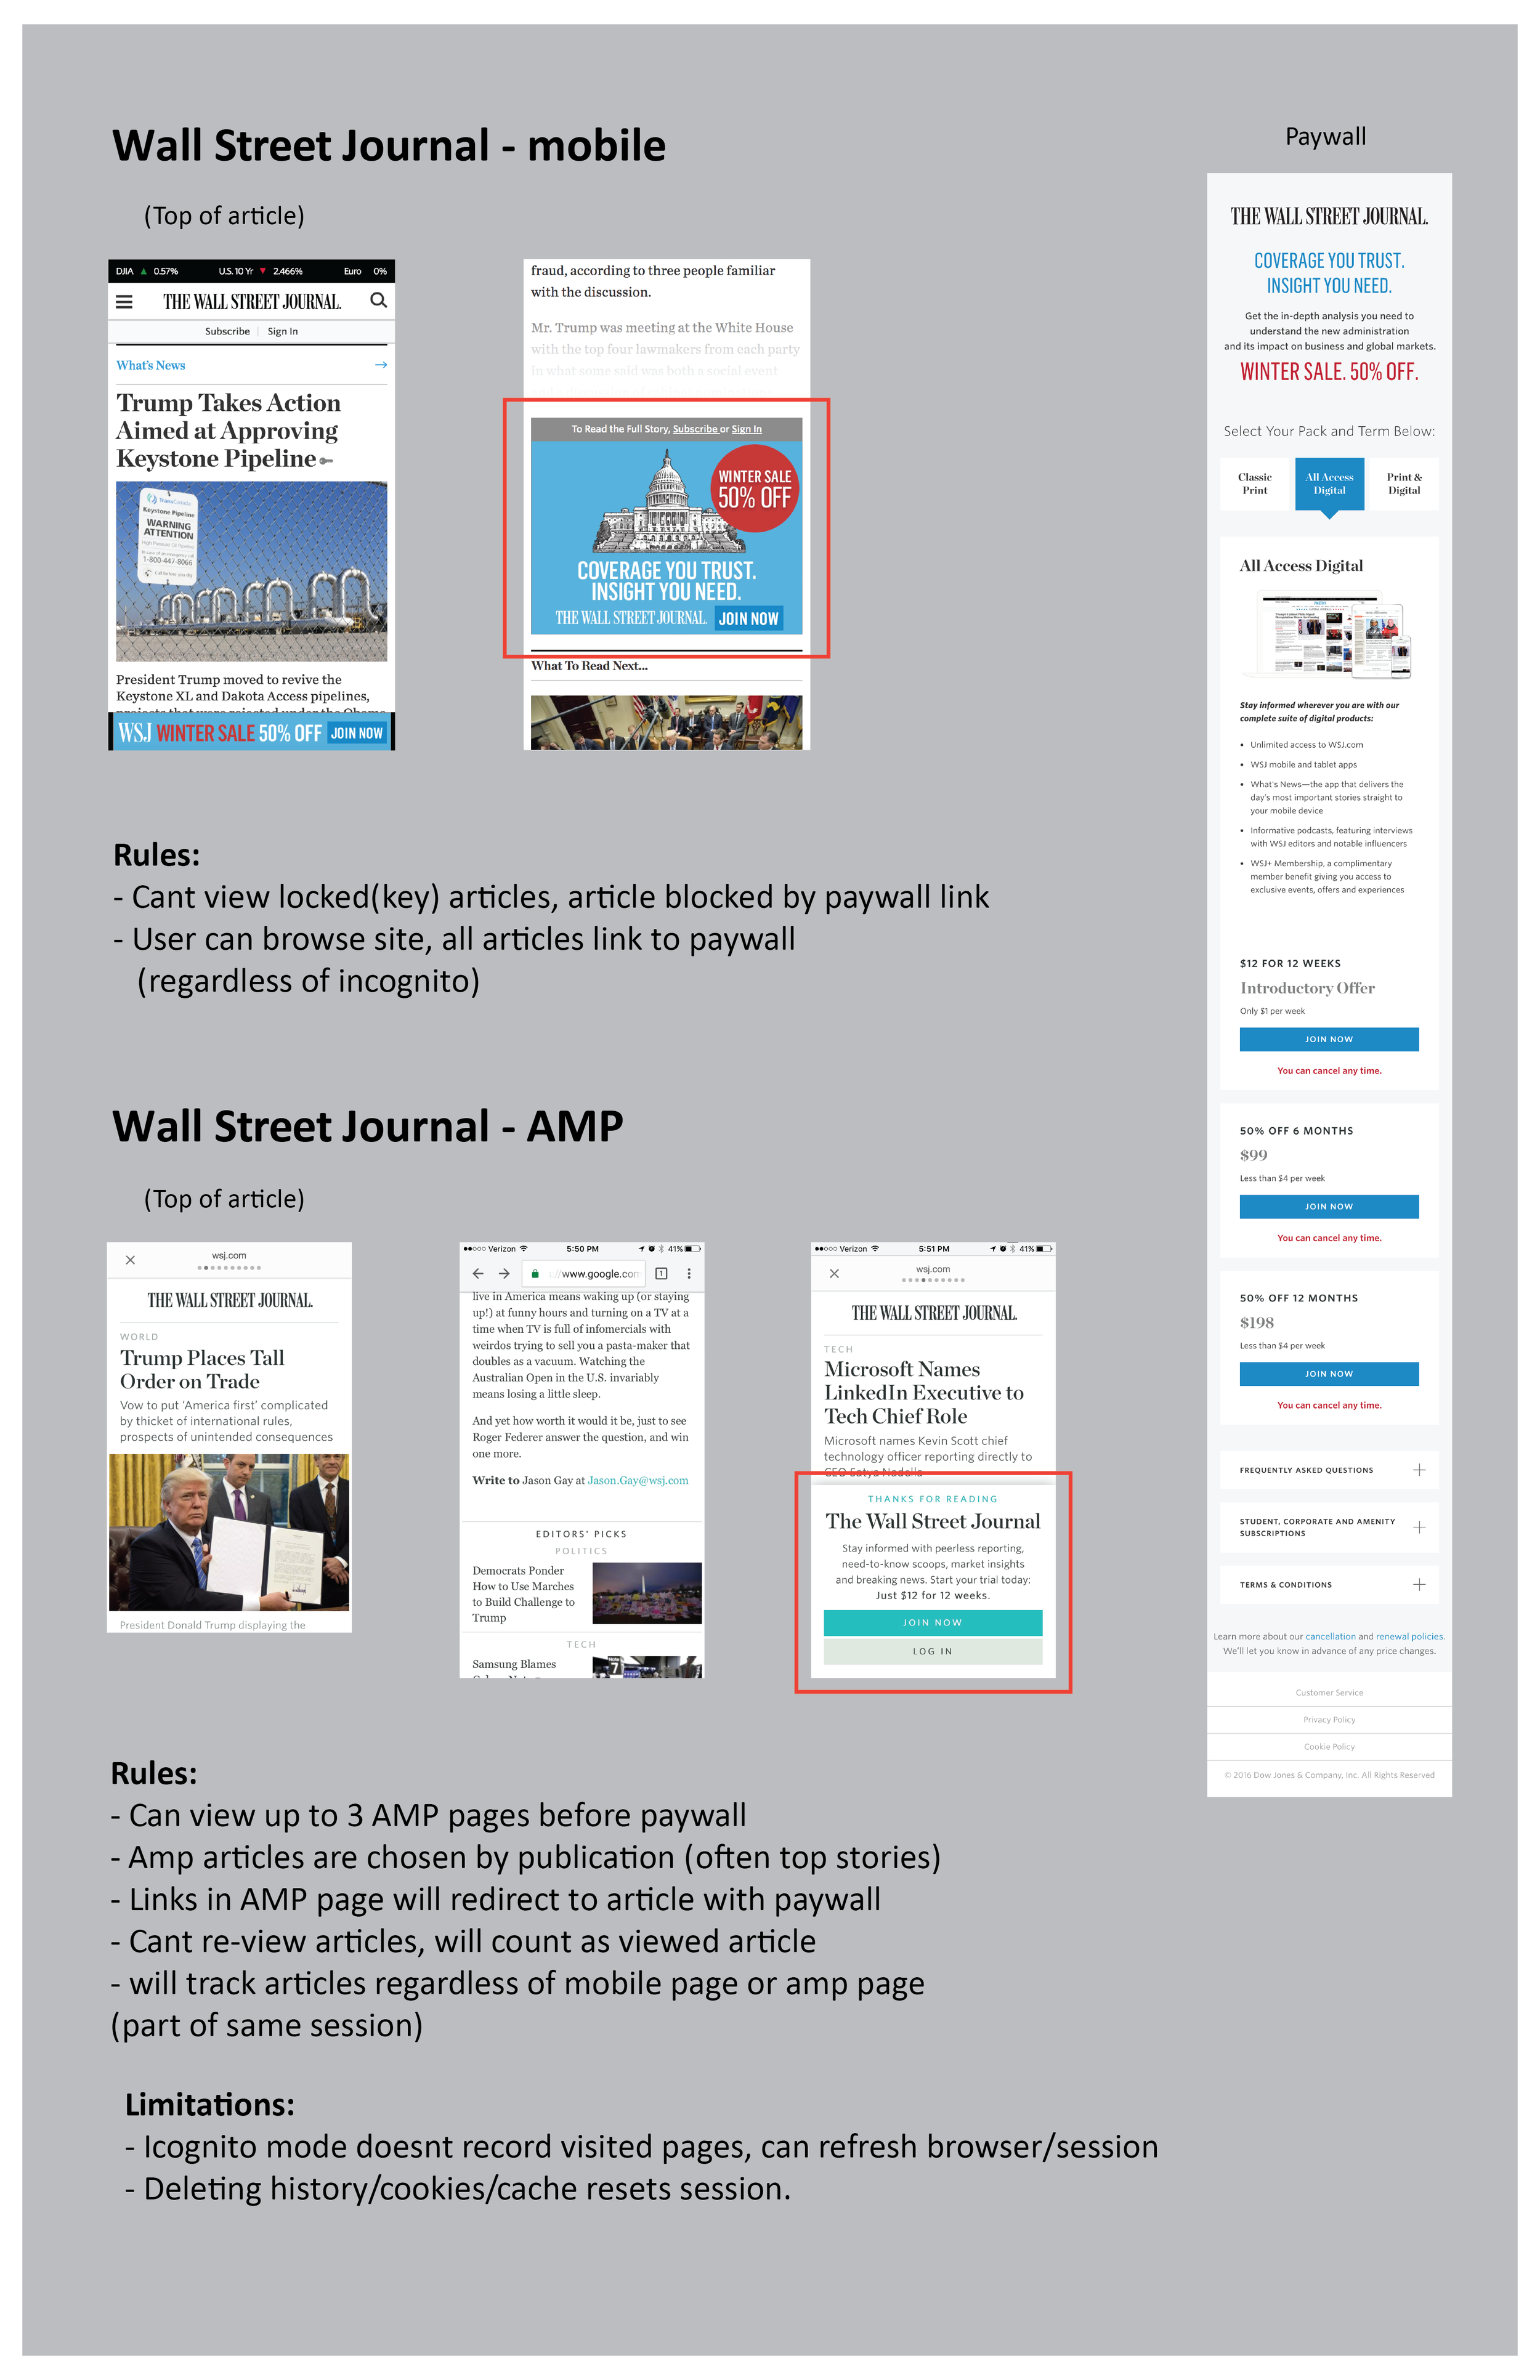 paywall_comp_wsj-01.png